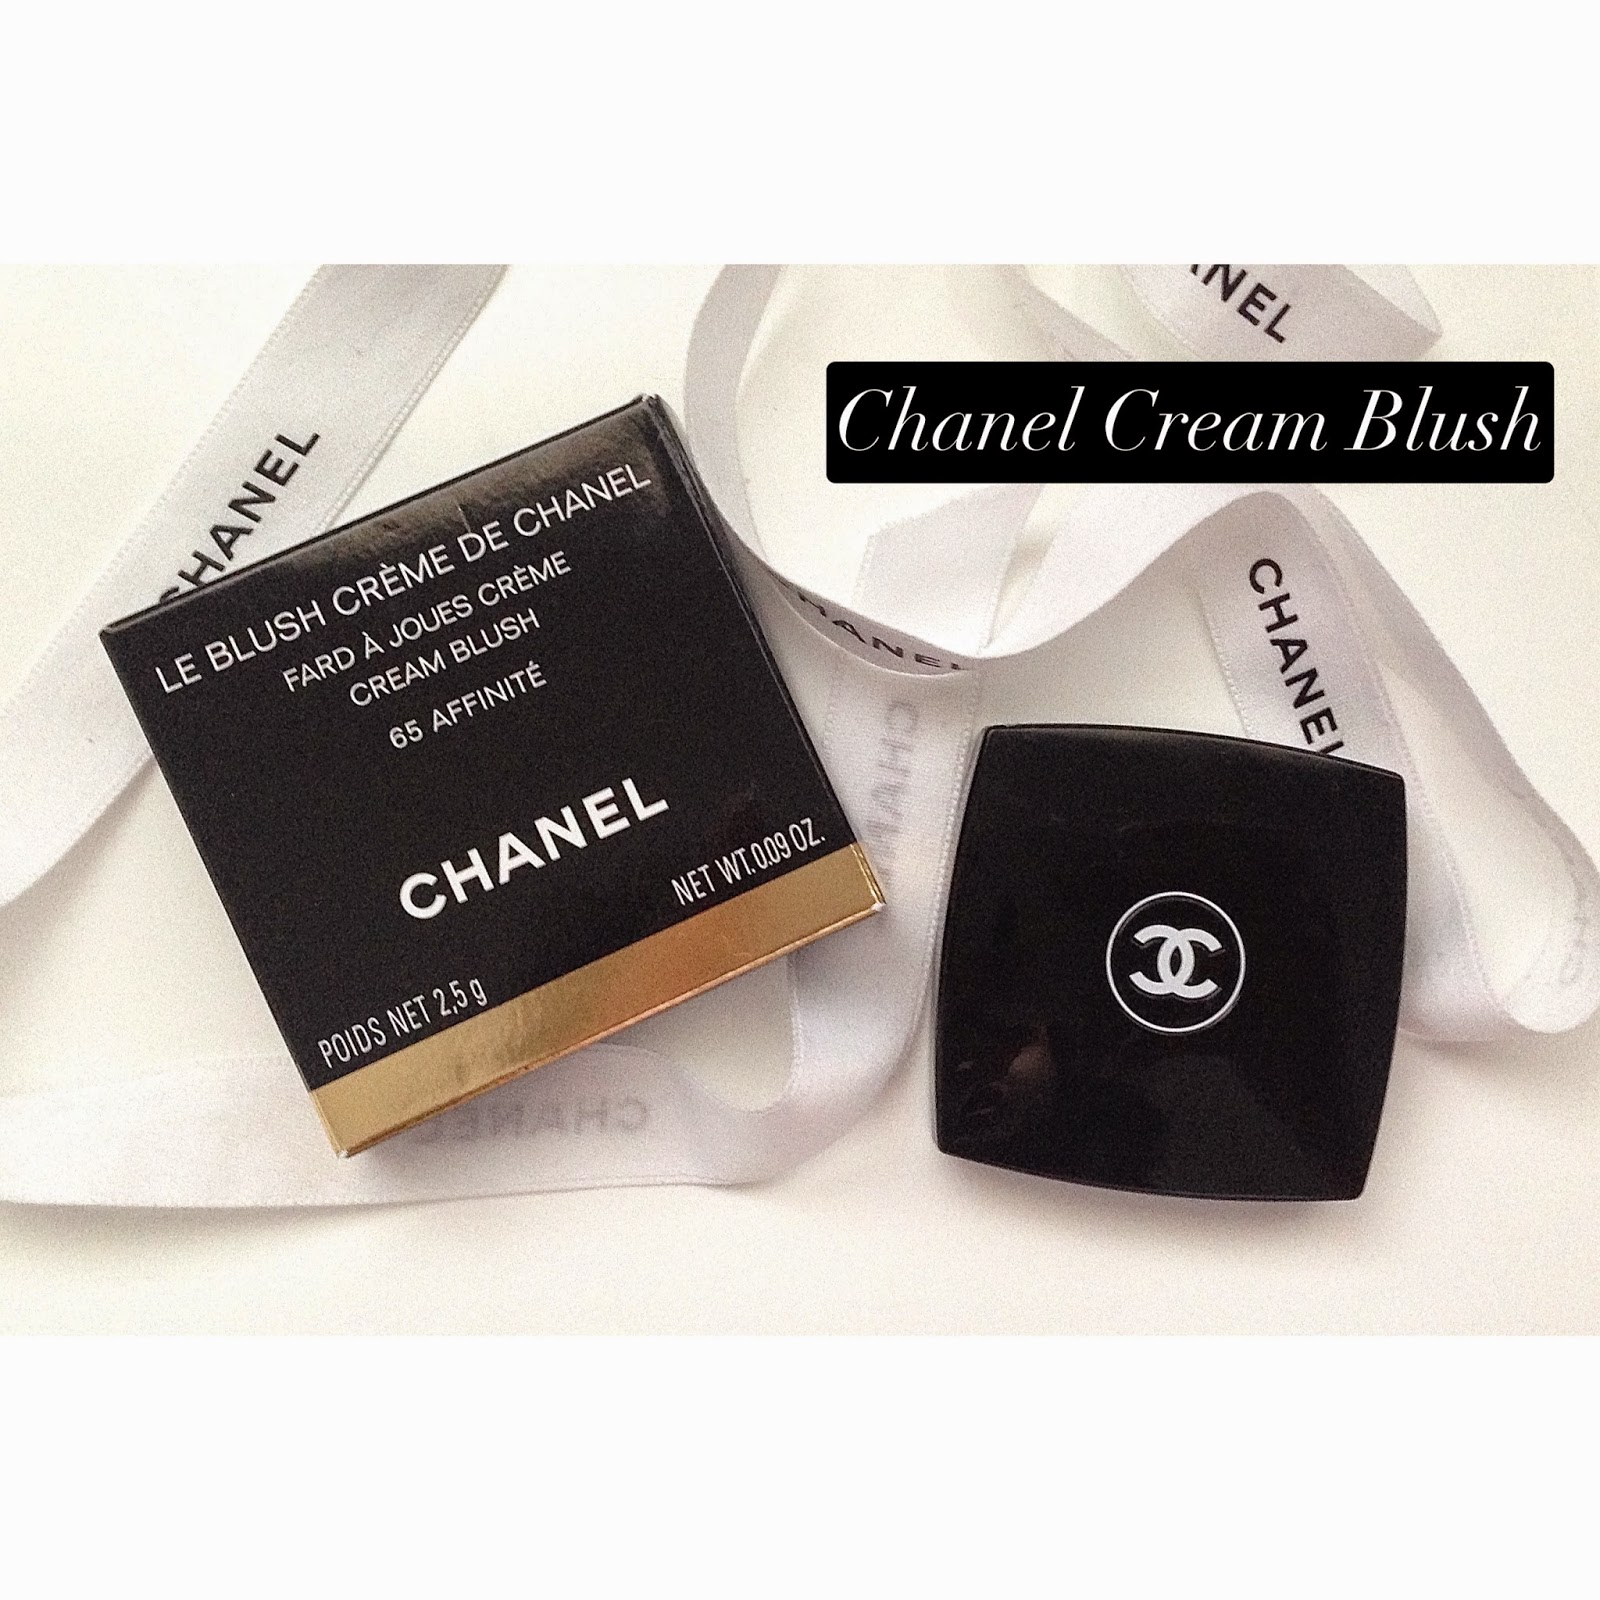 chanel blush cream review